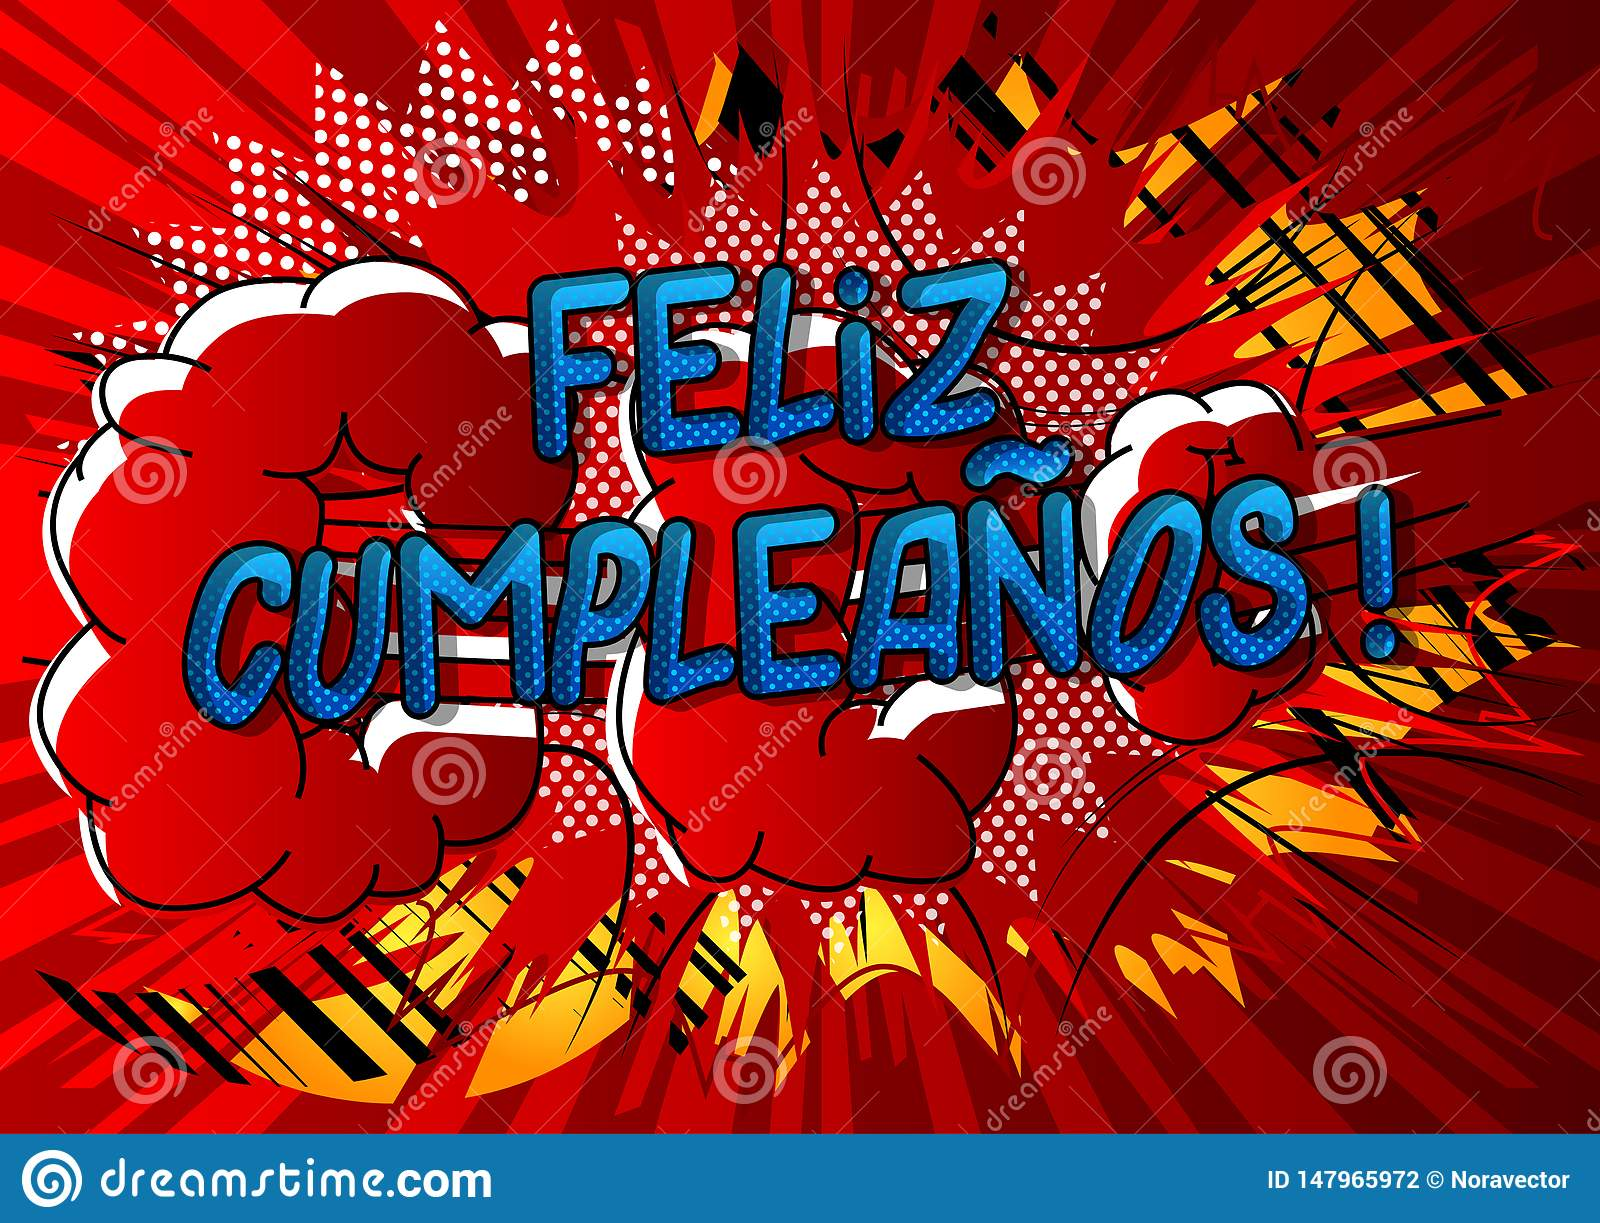 Happy Birthday In Spanish.Feliz Cumpleanos Happy Birthday In Spanish Stock Vector